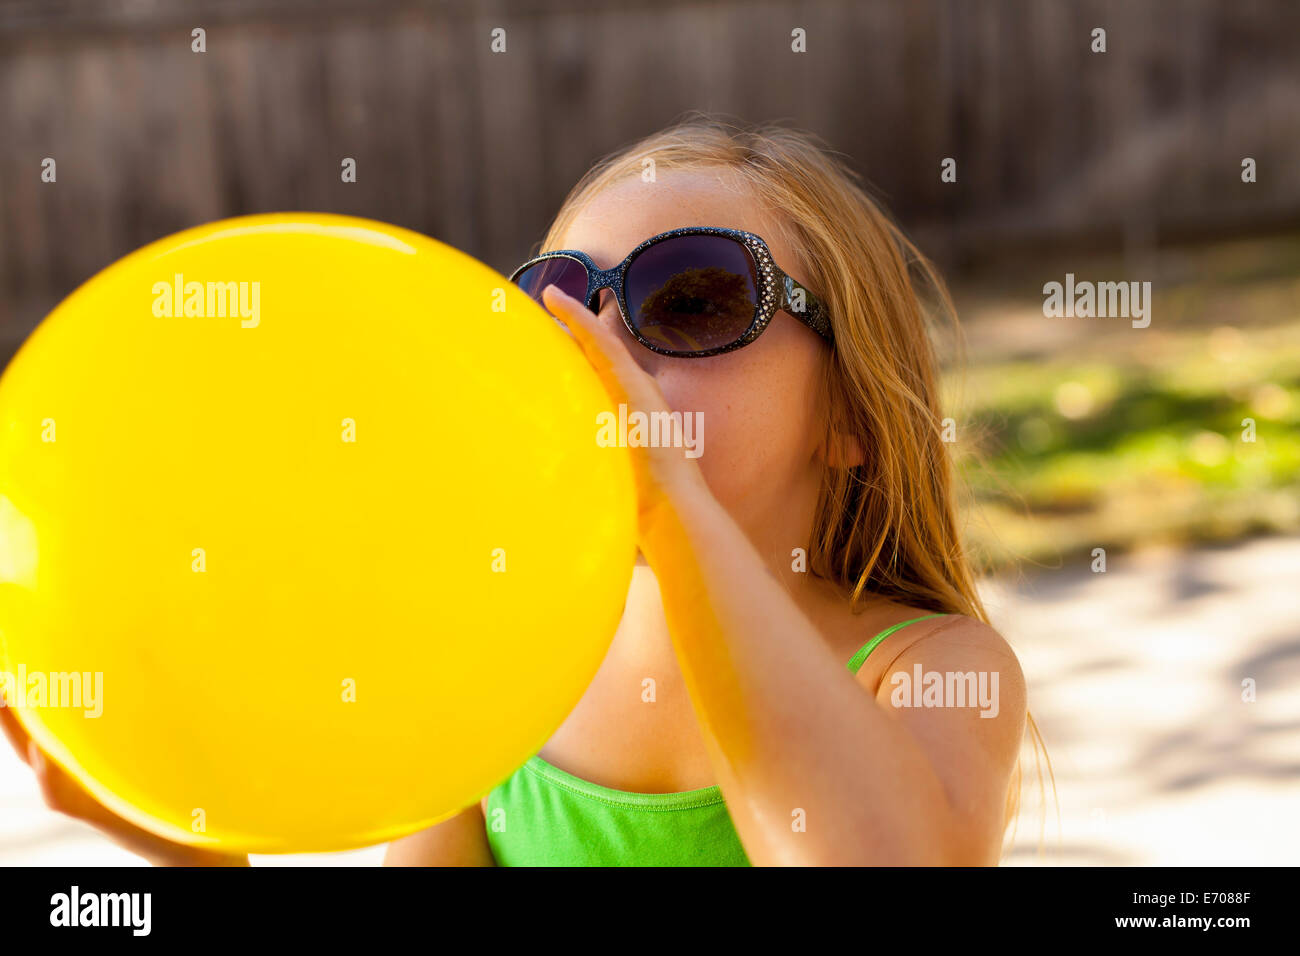 Girl inflating yellow balloon in garden - Stock Image